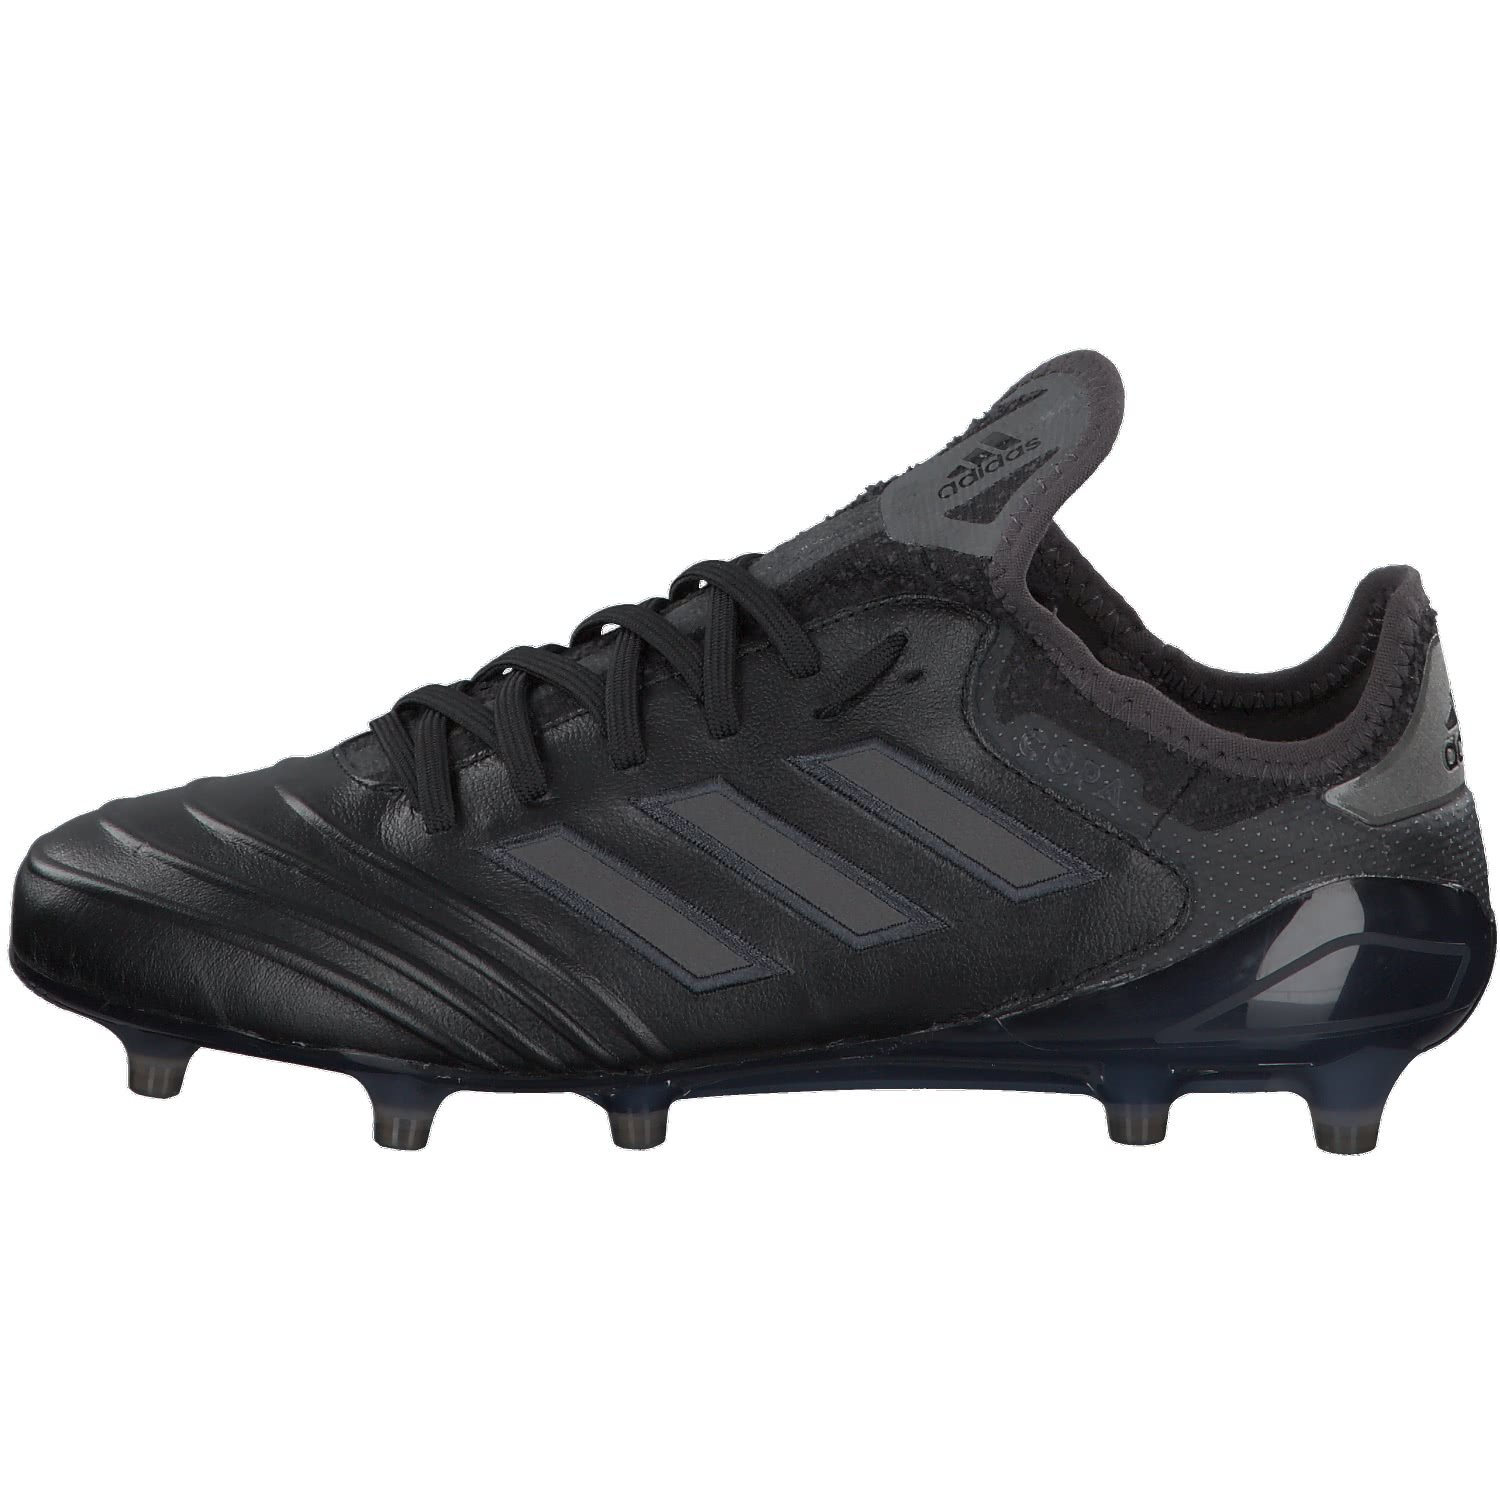 5b483f70b where to buy amazon adidas copa 18.1 fg football boots adult core black  utility black uk